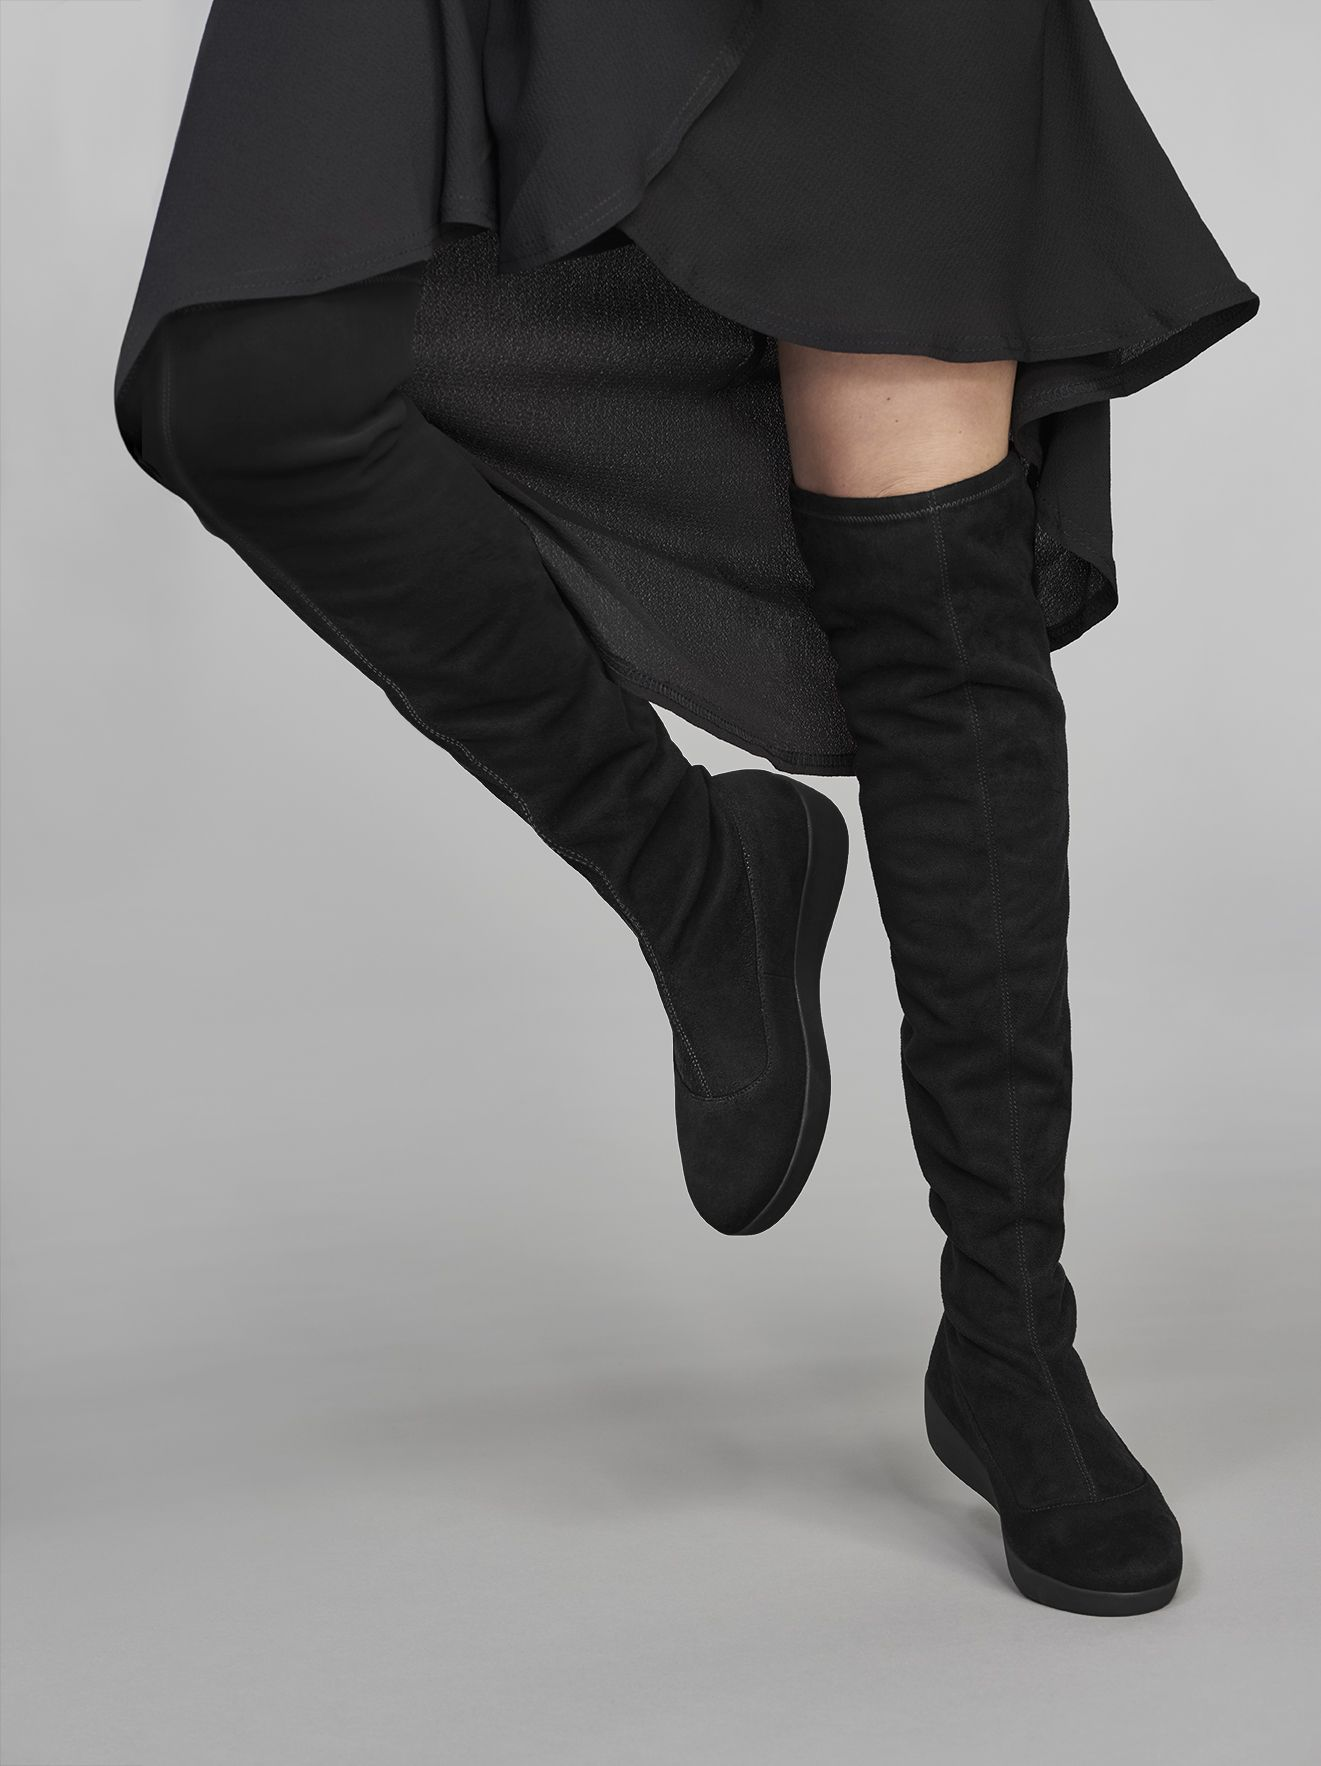 Boots | ALICE Over-The-Knee Sock Boots